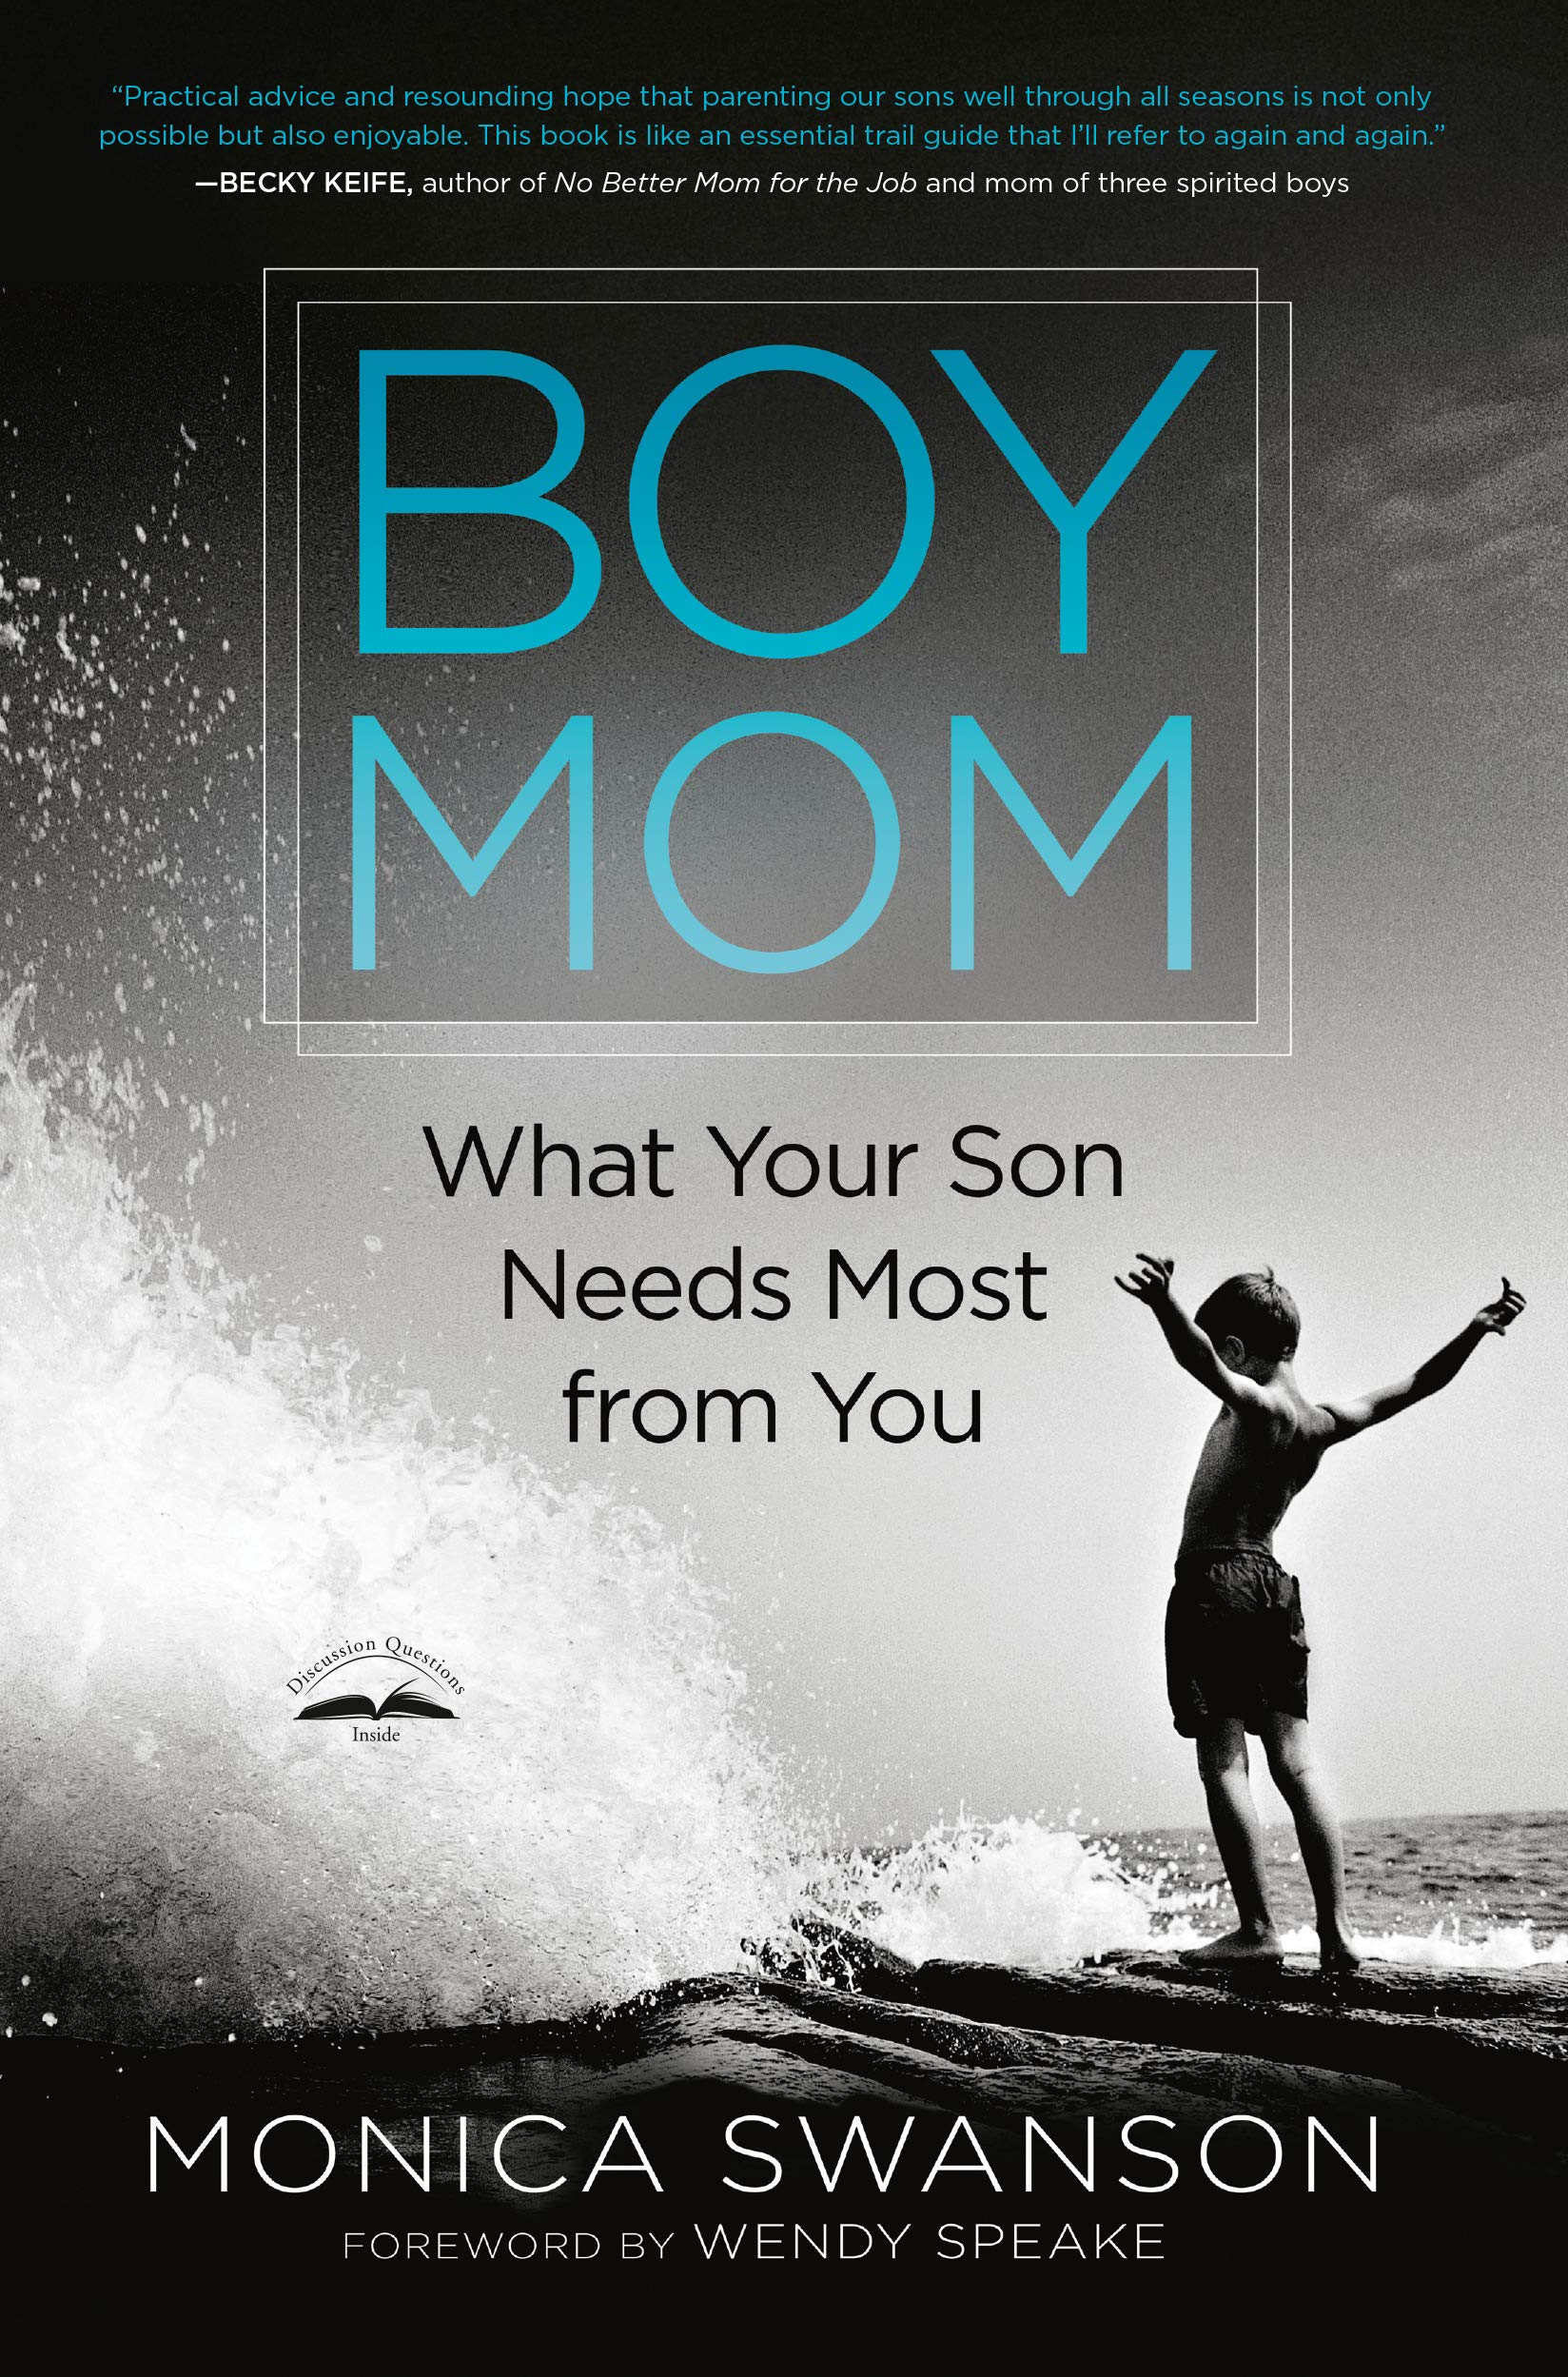 Boy Mom: What Your Son Needs Most from You: Monica Swanson